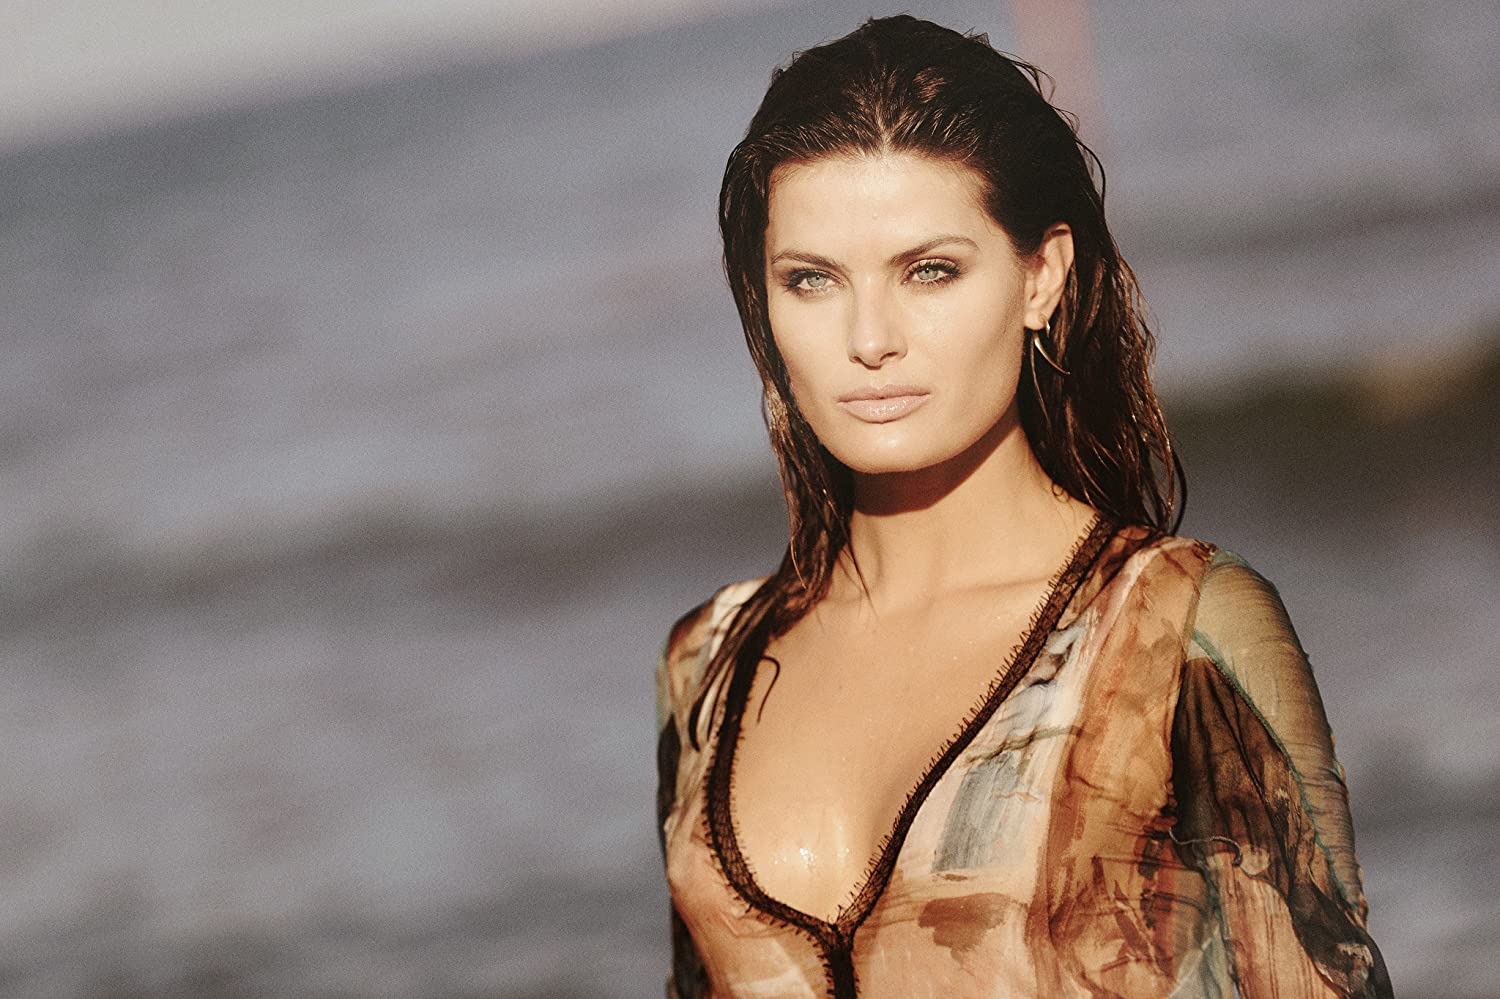 Isabeli Fontana nudes (17 photo), Topless, Leaked, Selfie, see through 2020